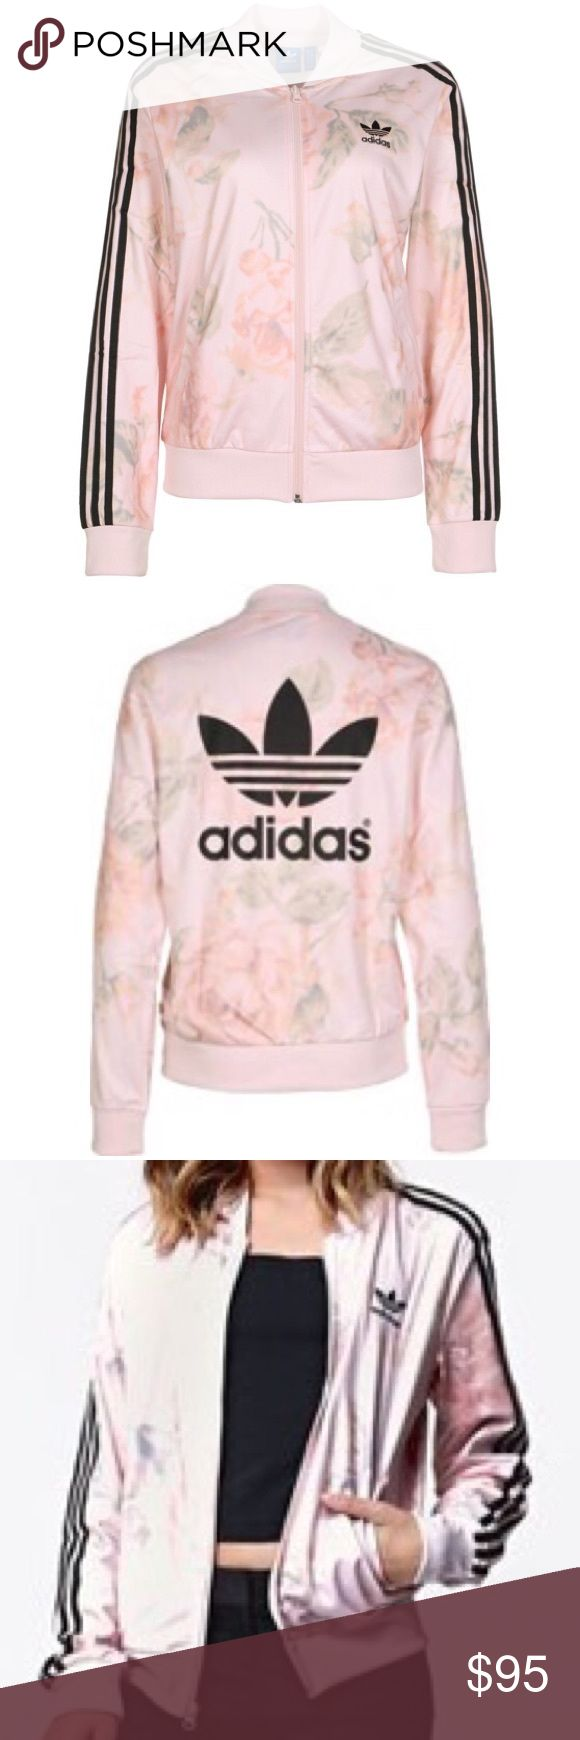 NWOT adidas pastel floral zip up Light pink zip up jacket with all over subtle floral design.  100% polyester.  Never worn  No trades Adidas Jackets & Coats